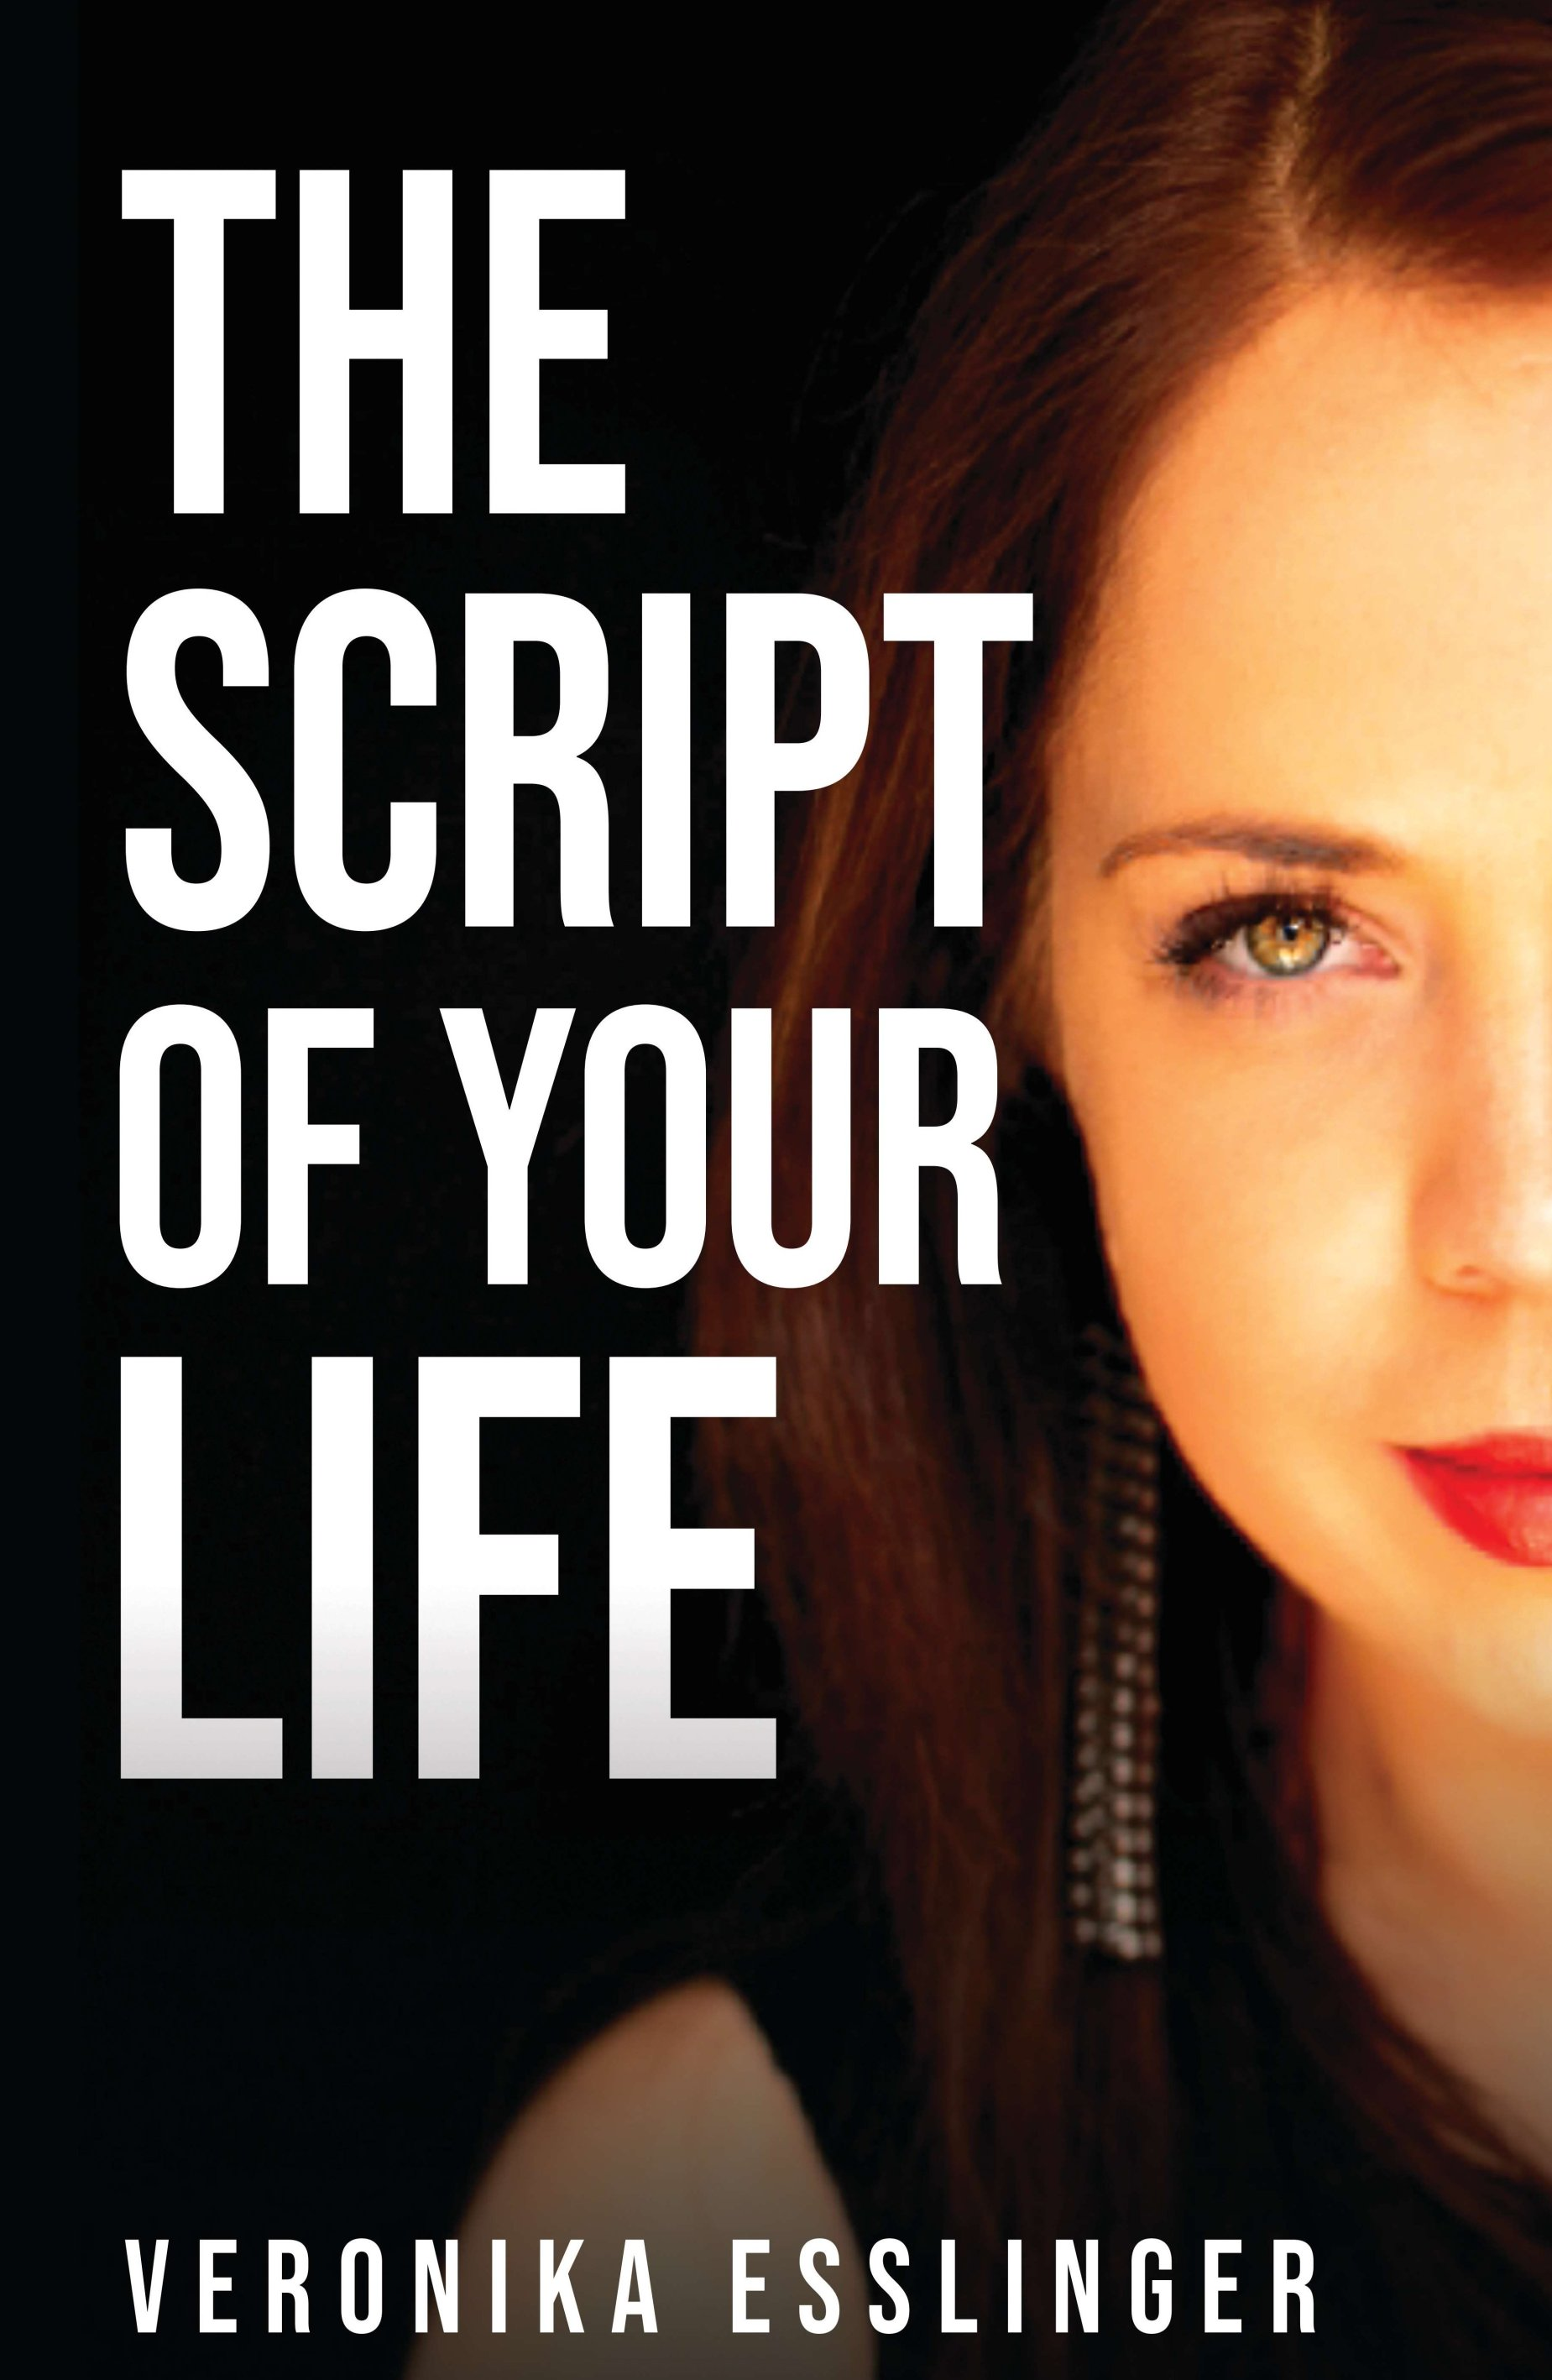 The Script of Your Life - Engaging love story about finding yourself